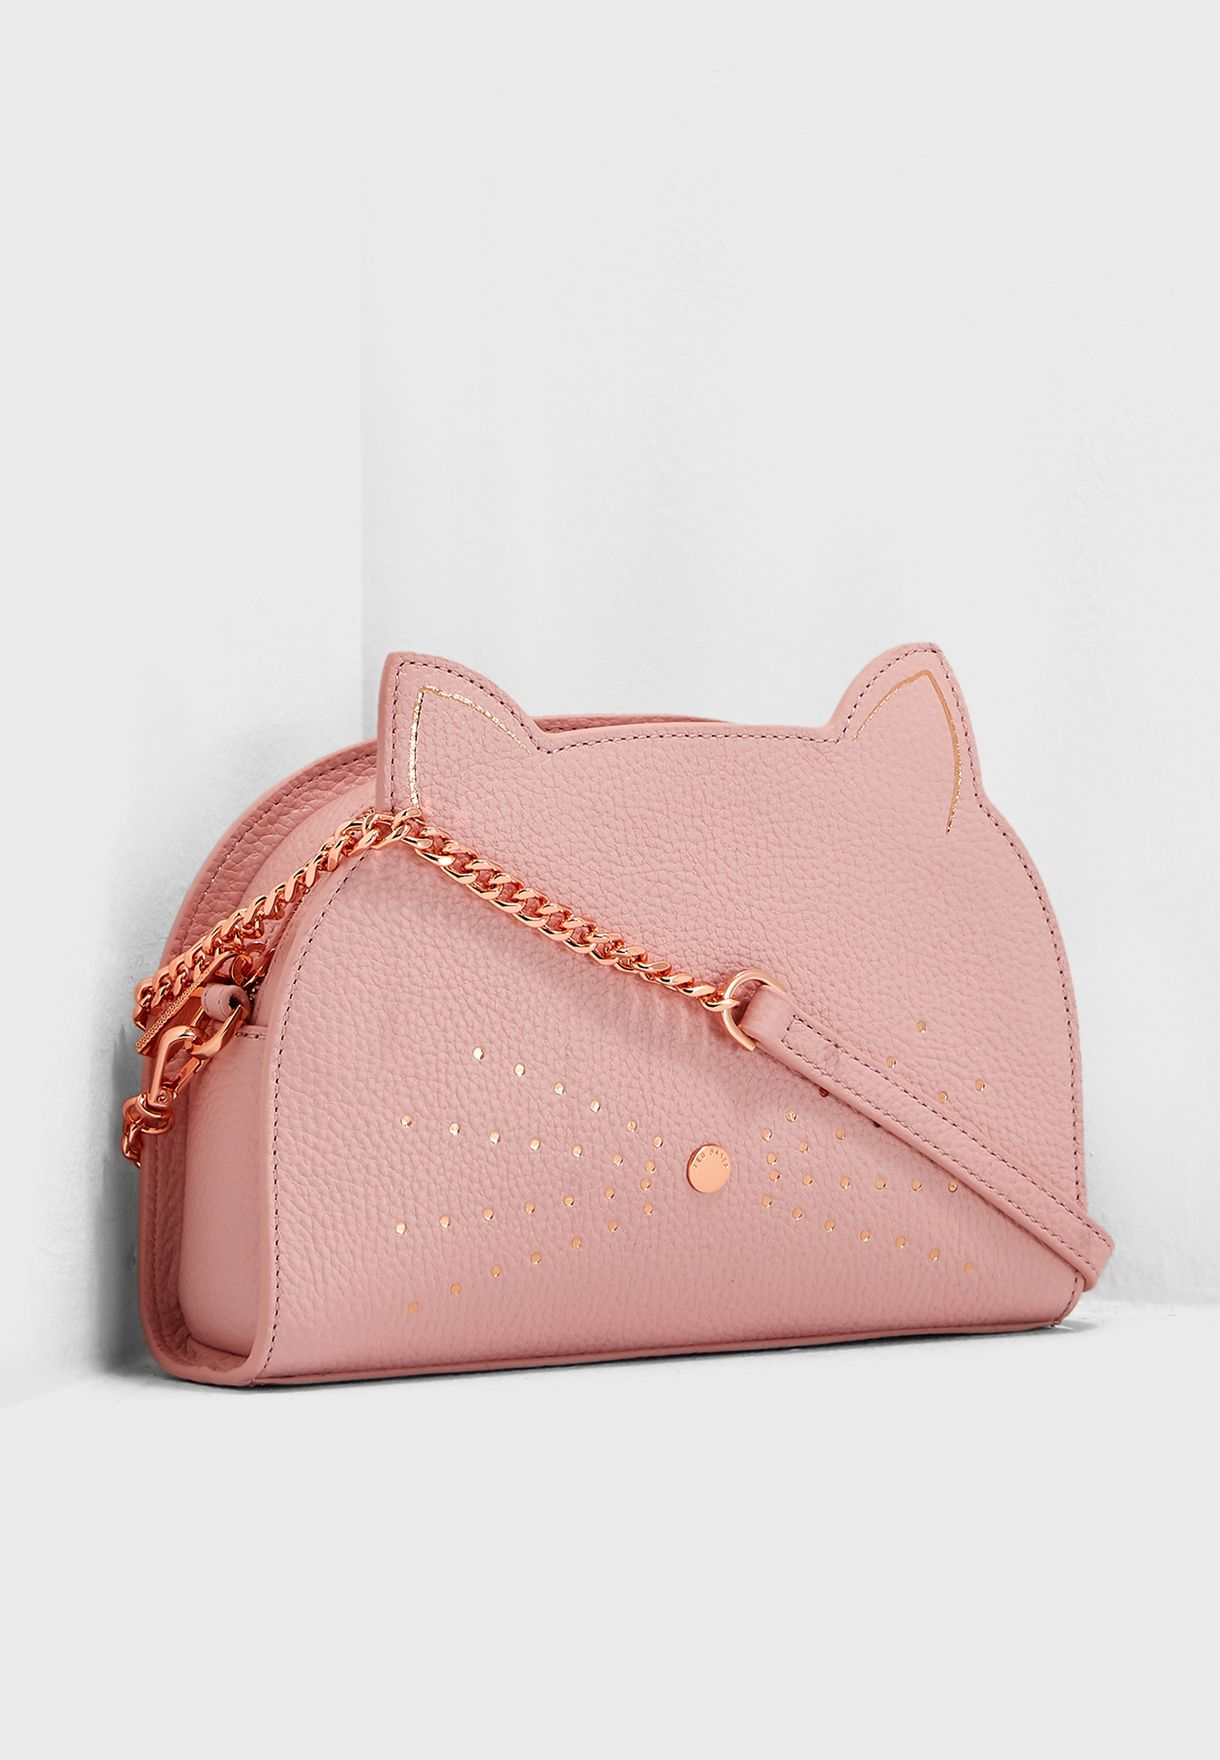 073e943c1 Shop Ted baker pink Kirstie Cat Crossbody 148978 for Women in UAE ...